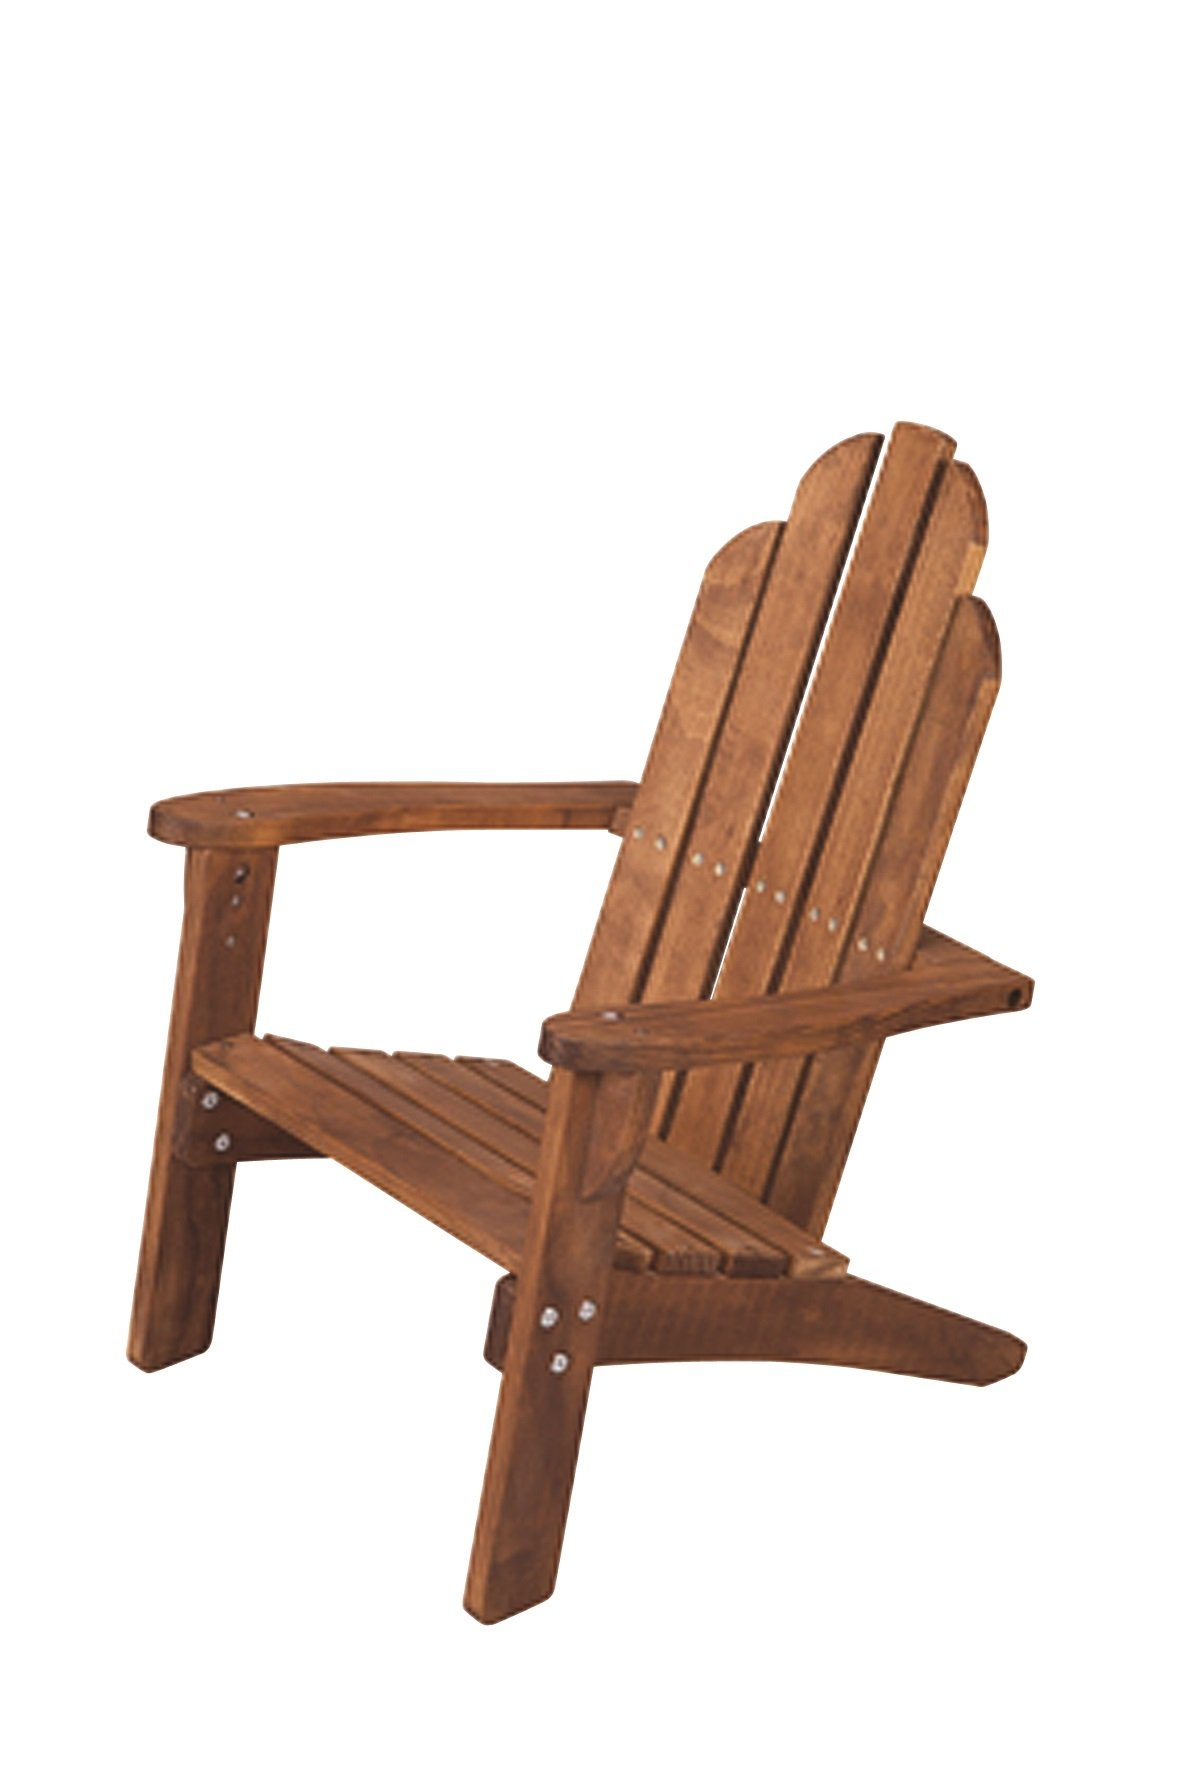 Maxim Child's Adirondack Chair. Kids Outdoor Wood Patio Furniture for Backyard, Lawn & Deck by maxim enterprise, inc.